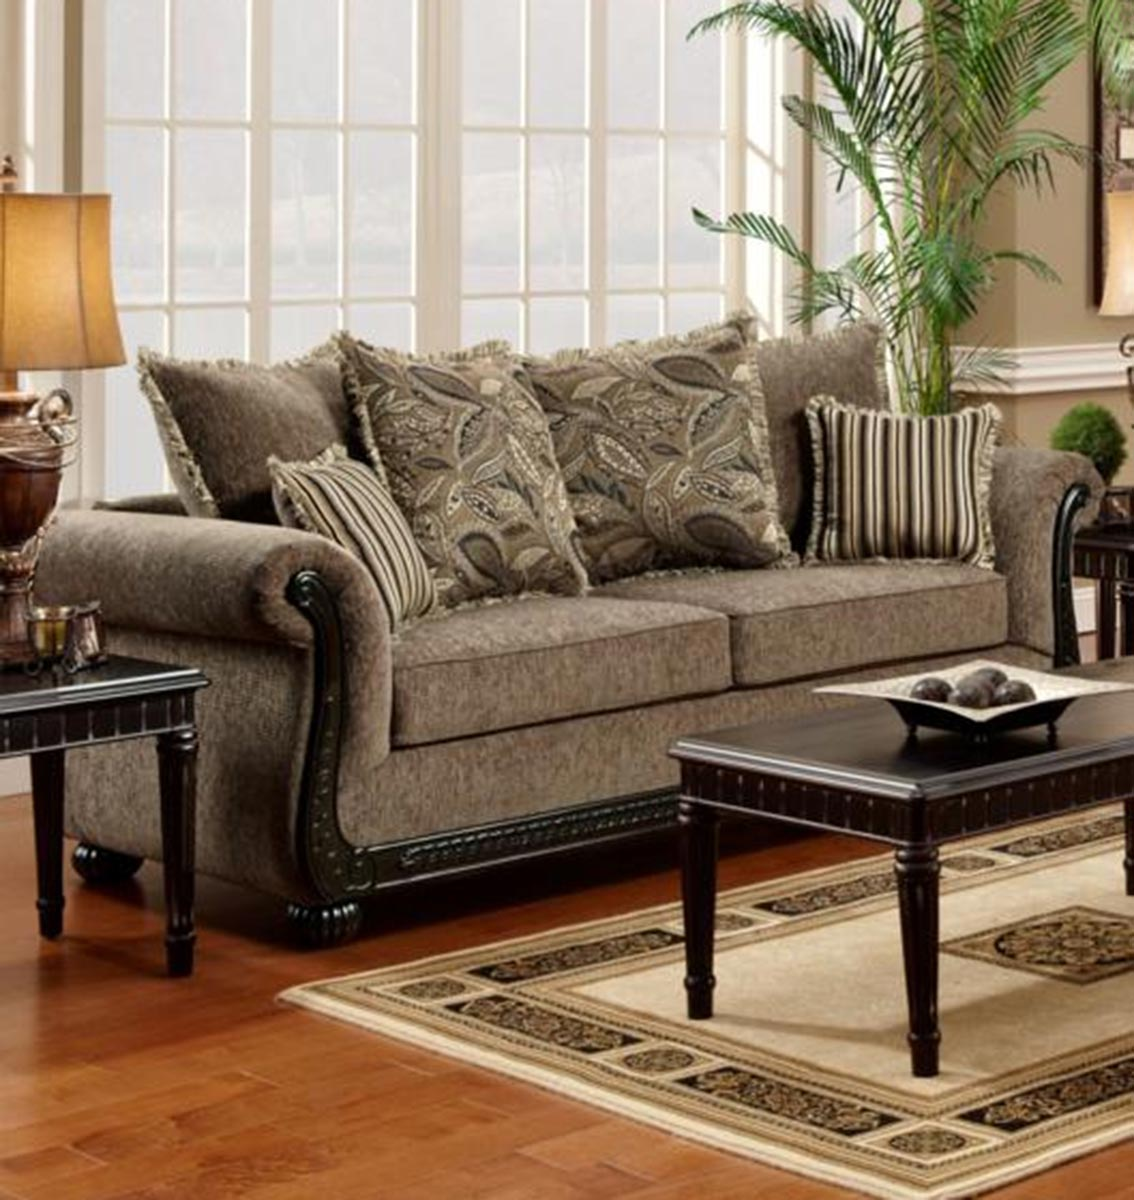 Chelsea Home Lily Sofa Set Dream Java